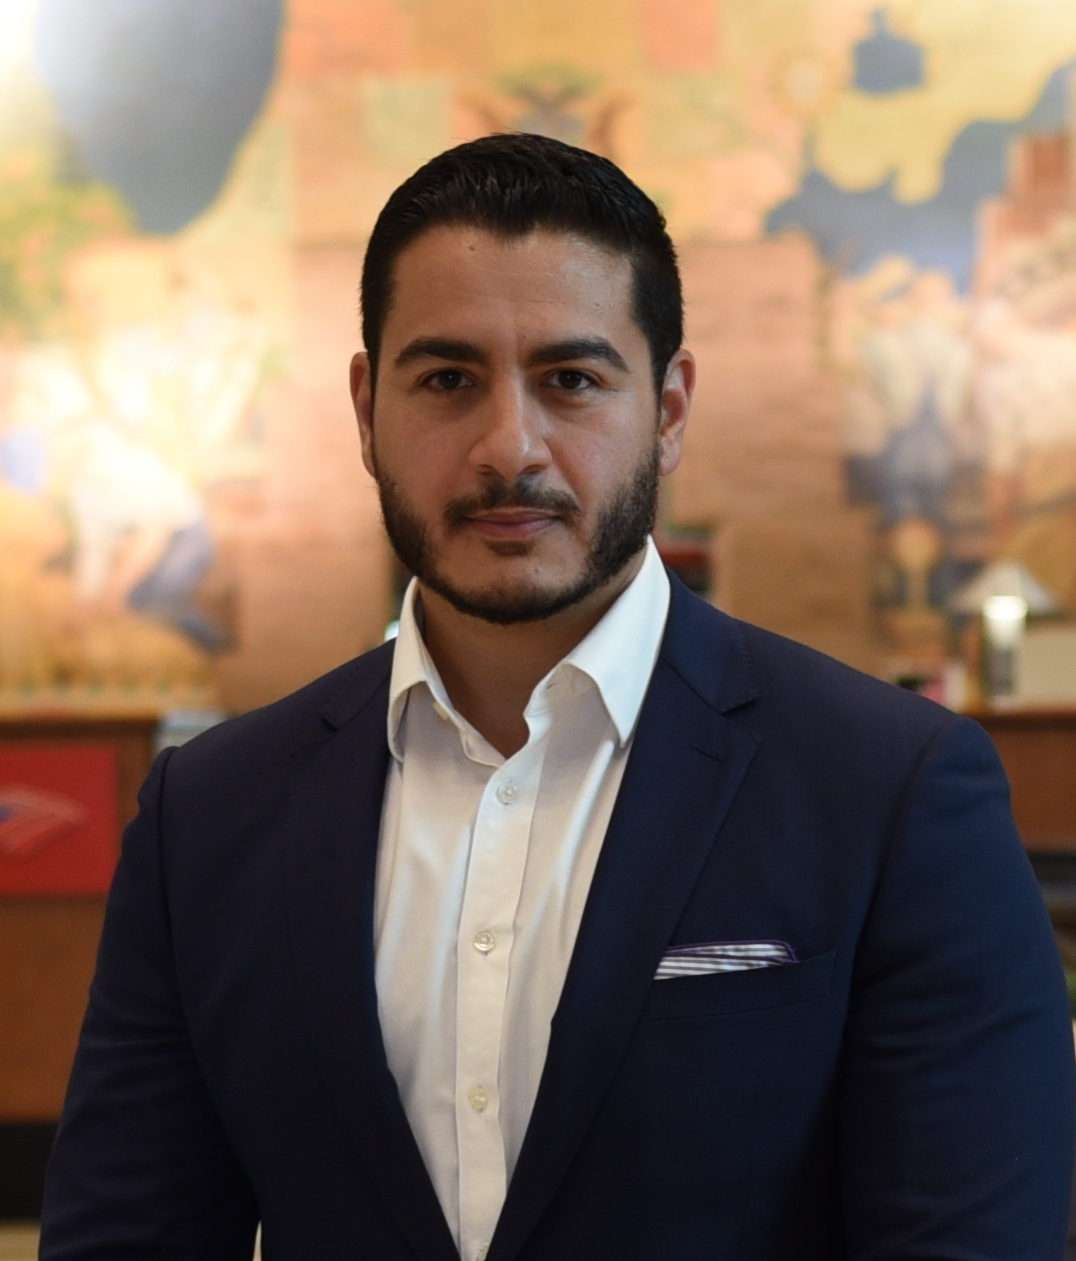 Dr. Abdul El-Sayed on Just In News Poddcast